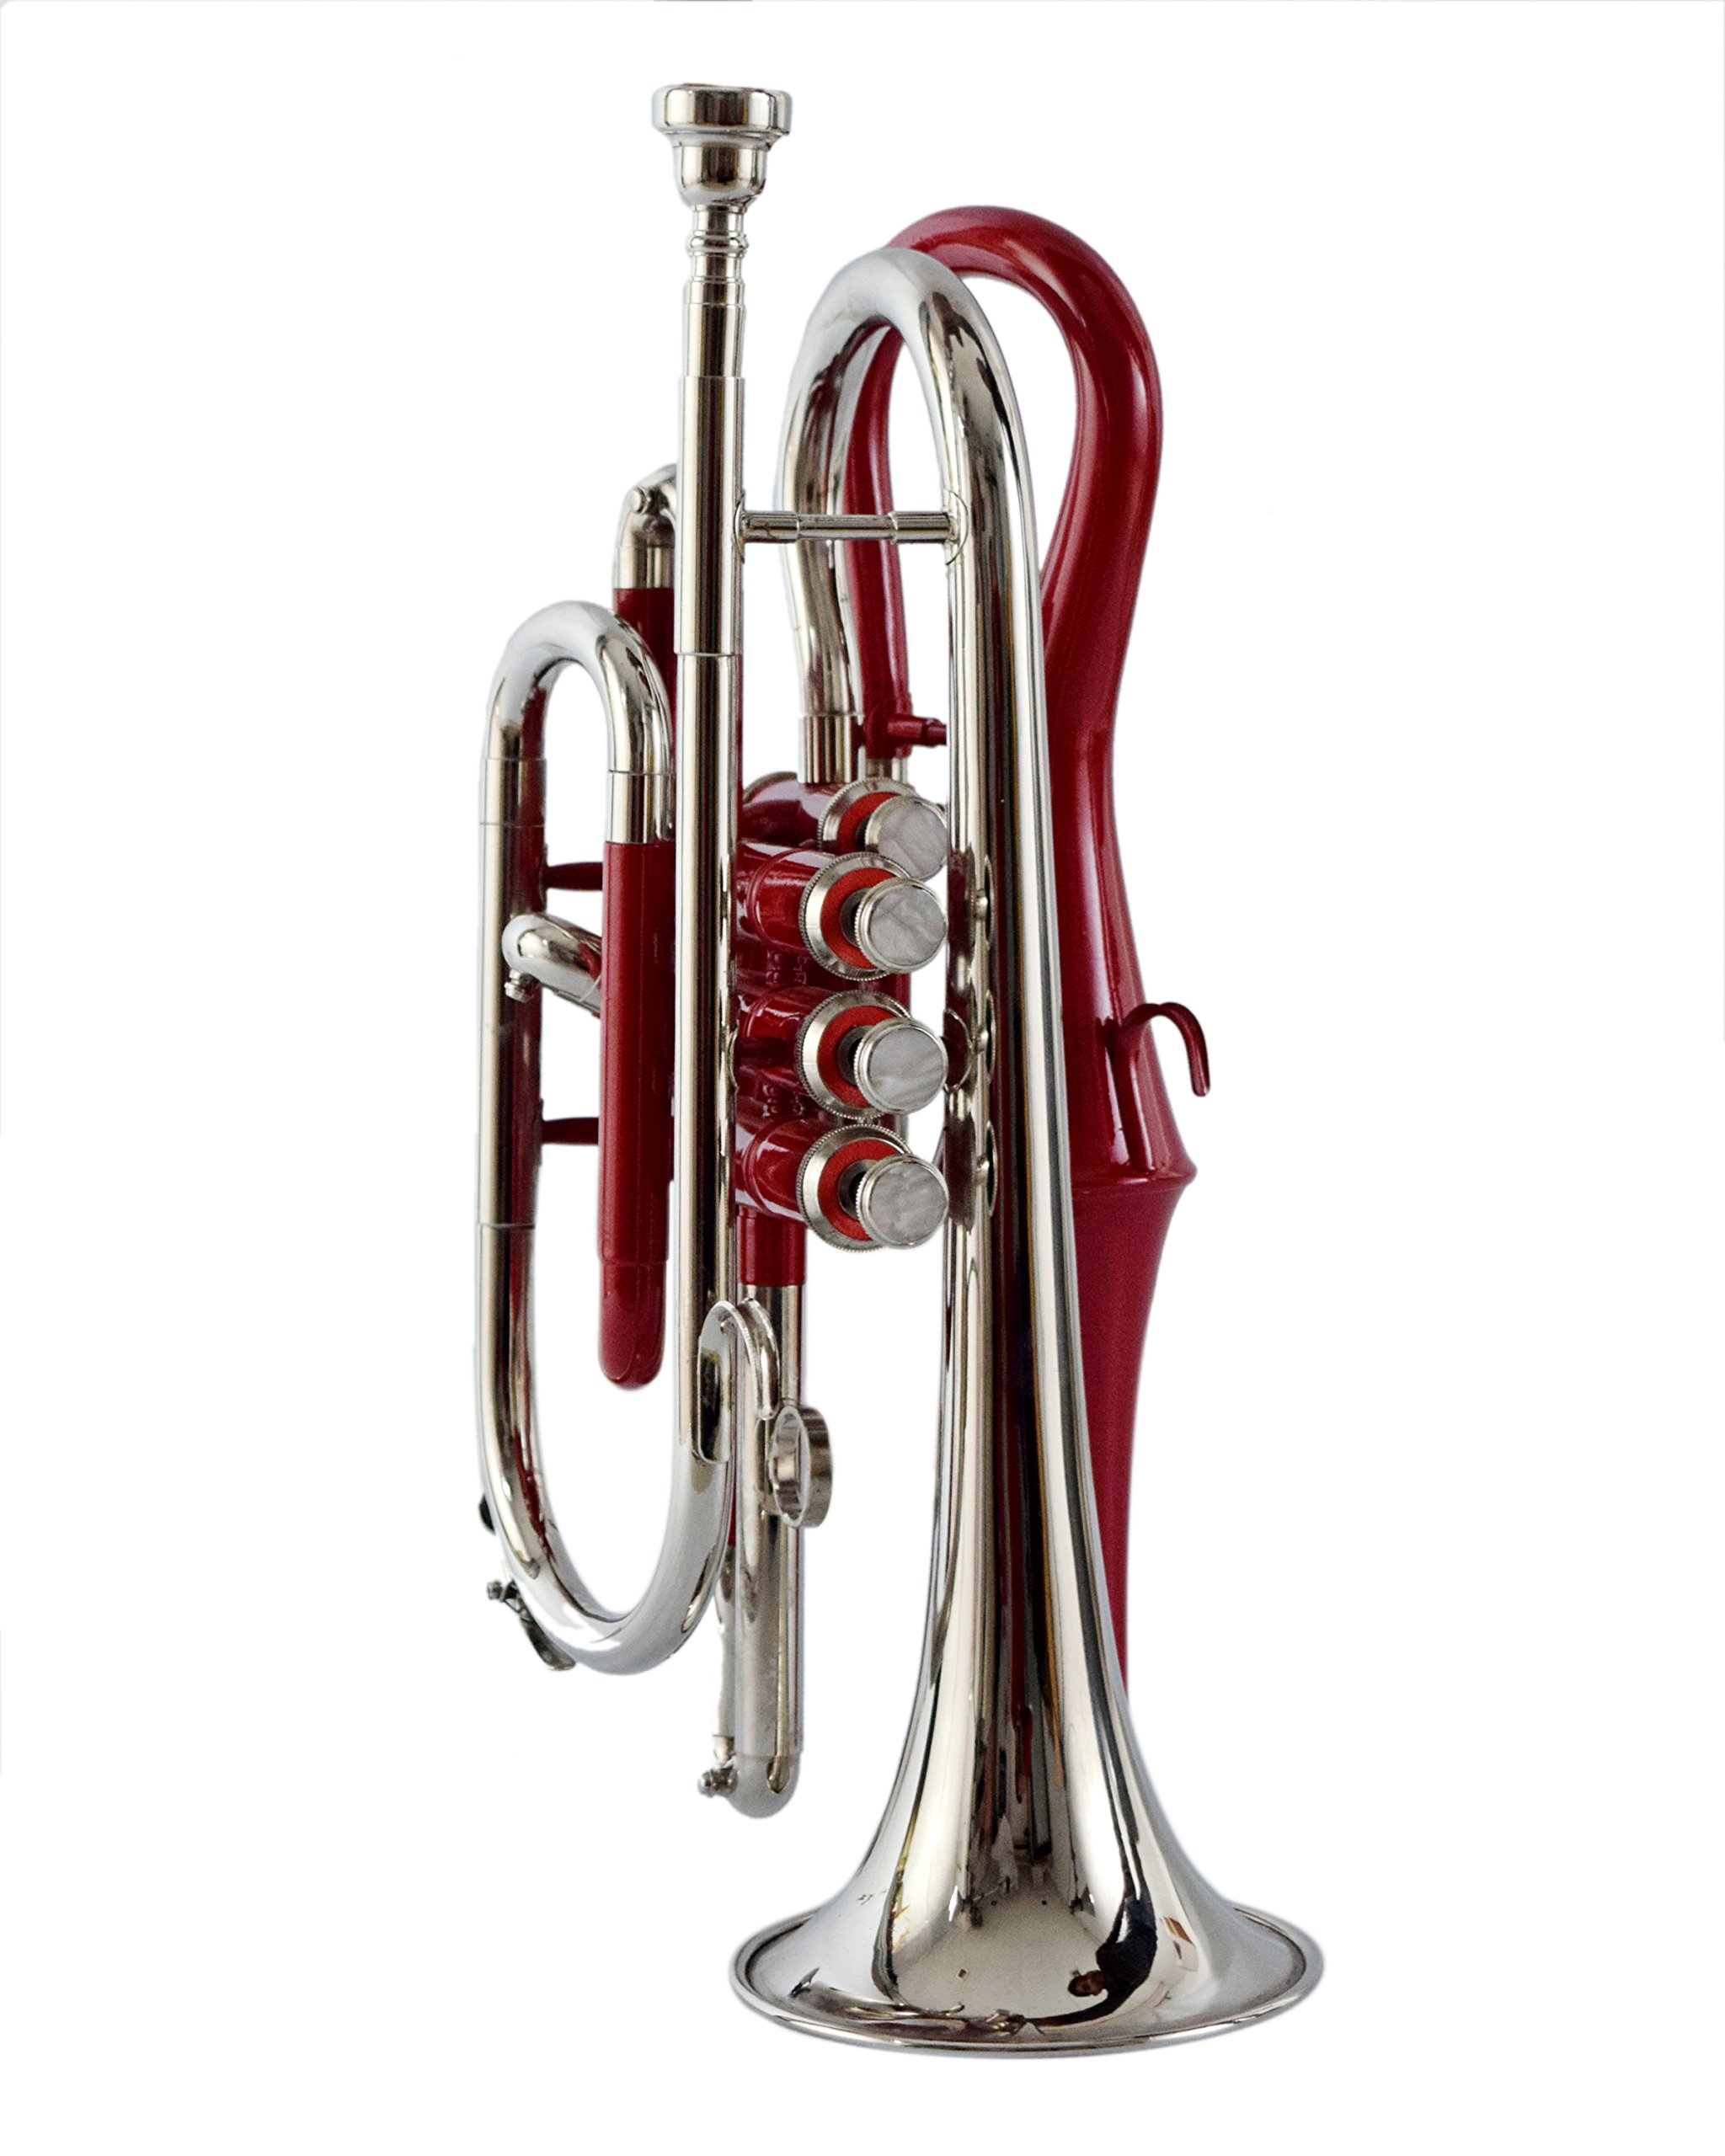 NASIR ALI BEAUTIFUL CORNET BP PITCH RED+ NICKEL COLORED WITH CASE AND MP by NASIR ALI (Image #3)